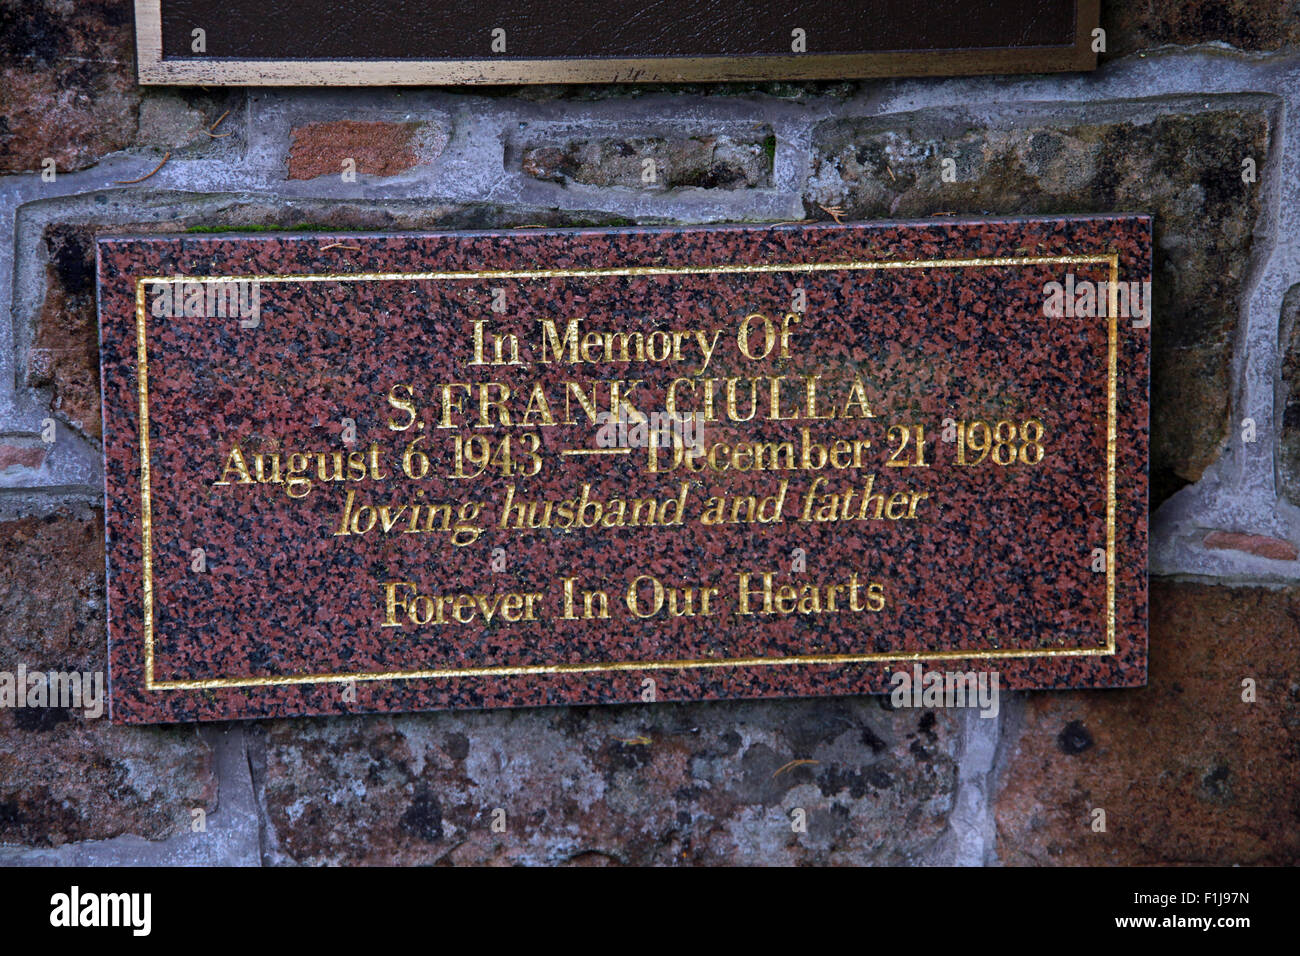 Frank Ciulla,Scotland,Lodge,Visitors,Centre,DLVC,Trust,Lockerbie,Memorial,Remembrance,Scotland,Victims,Pan,Am,PanAm,flight,103,bomb,bombing,terrorist,December,1988,attack,crash,dead,site,21/12/1988,270,victims,Scottish,Town,conspiracy,blast,Tundergarth,Room,garden,of,Dryfesdale,Cemetery,New York,GoTonySmith,Lodge,Visitors,Centre,DLVC,Trust,Lockerbie,Memorial,Scotland,Victims,Pan,Am,PanAm,flight,103,bomb,bombing,terrorist,December,1988,attack,crash,dead,site,21/12/1988,270,victims,Scottish,Town,conspiracy,blast,Tundergarth,Room,garden,of,Dryfesdale,Cemetery,news,Cultural,understanding,remembering,innocent,transatlantic,Frankfurt,Detroit,Libyan,Libya,Colonel Muammar Gaddafi,civil,case,compensation,terrorism,PA103,30,30years,years,Syracuse,University,SU,family,collections,Story,Archive,Archives,40,35,Timeline,saga,disaster,air,Scholars,program,programs,remembrance,Clipper Maid of the Seas,N739PA,Boeing,727,plane,aircraft,Scotland,UK,United Kingdom,GB,Great Britain,resting,place,Buy Pictures of,Buy Images Of,New York,al megrahi,30 Years